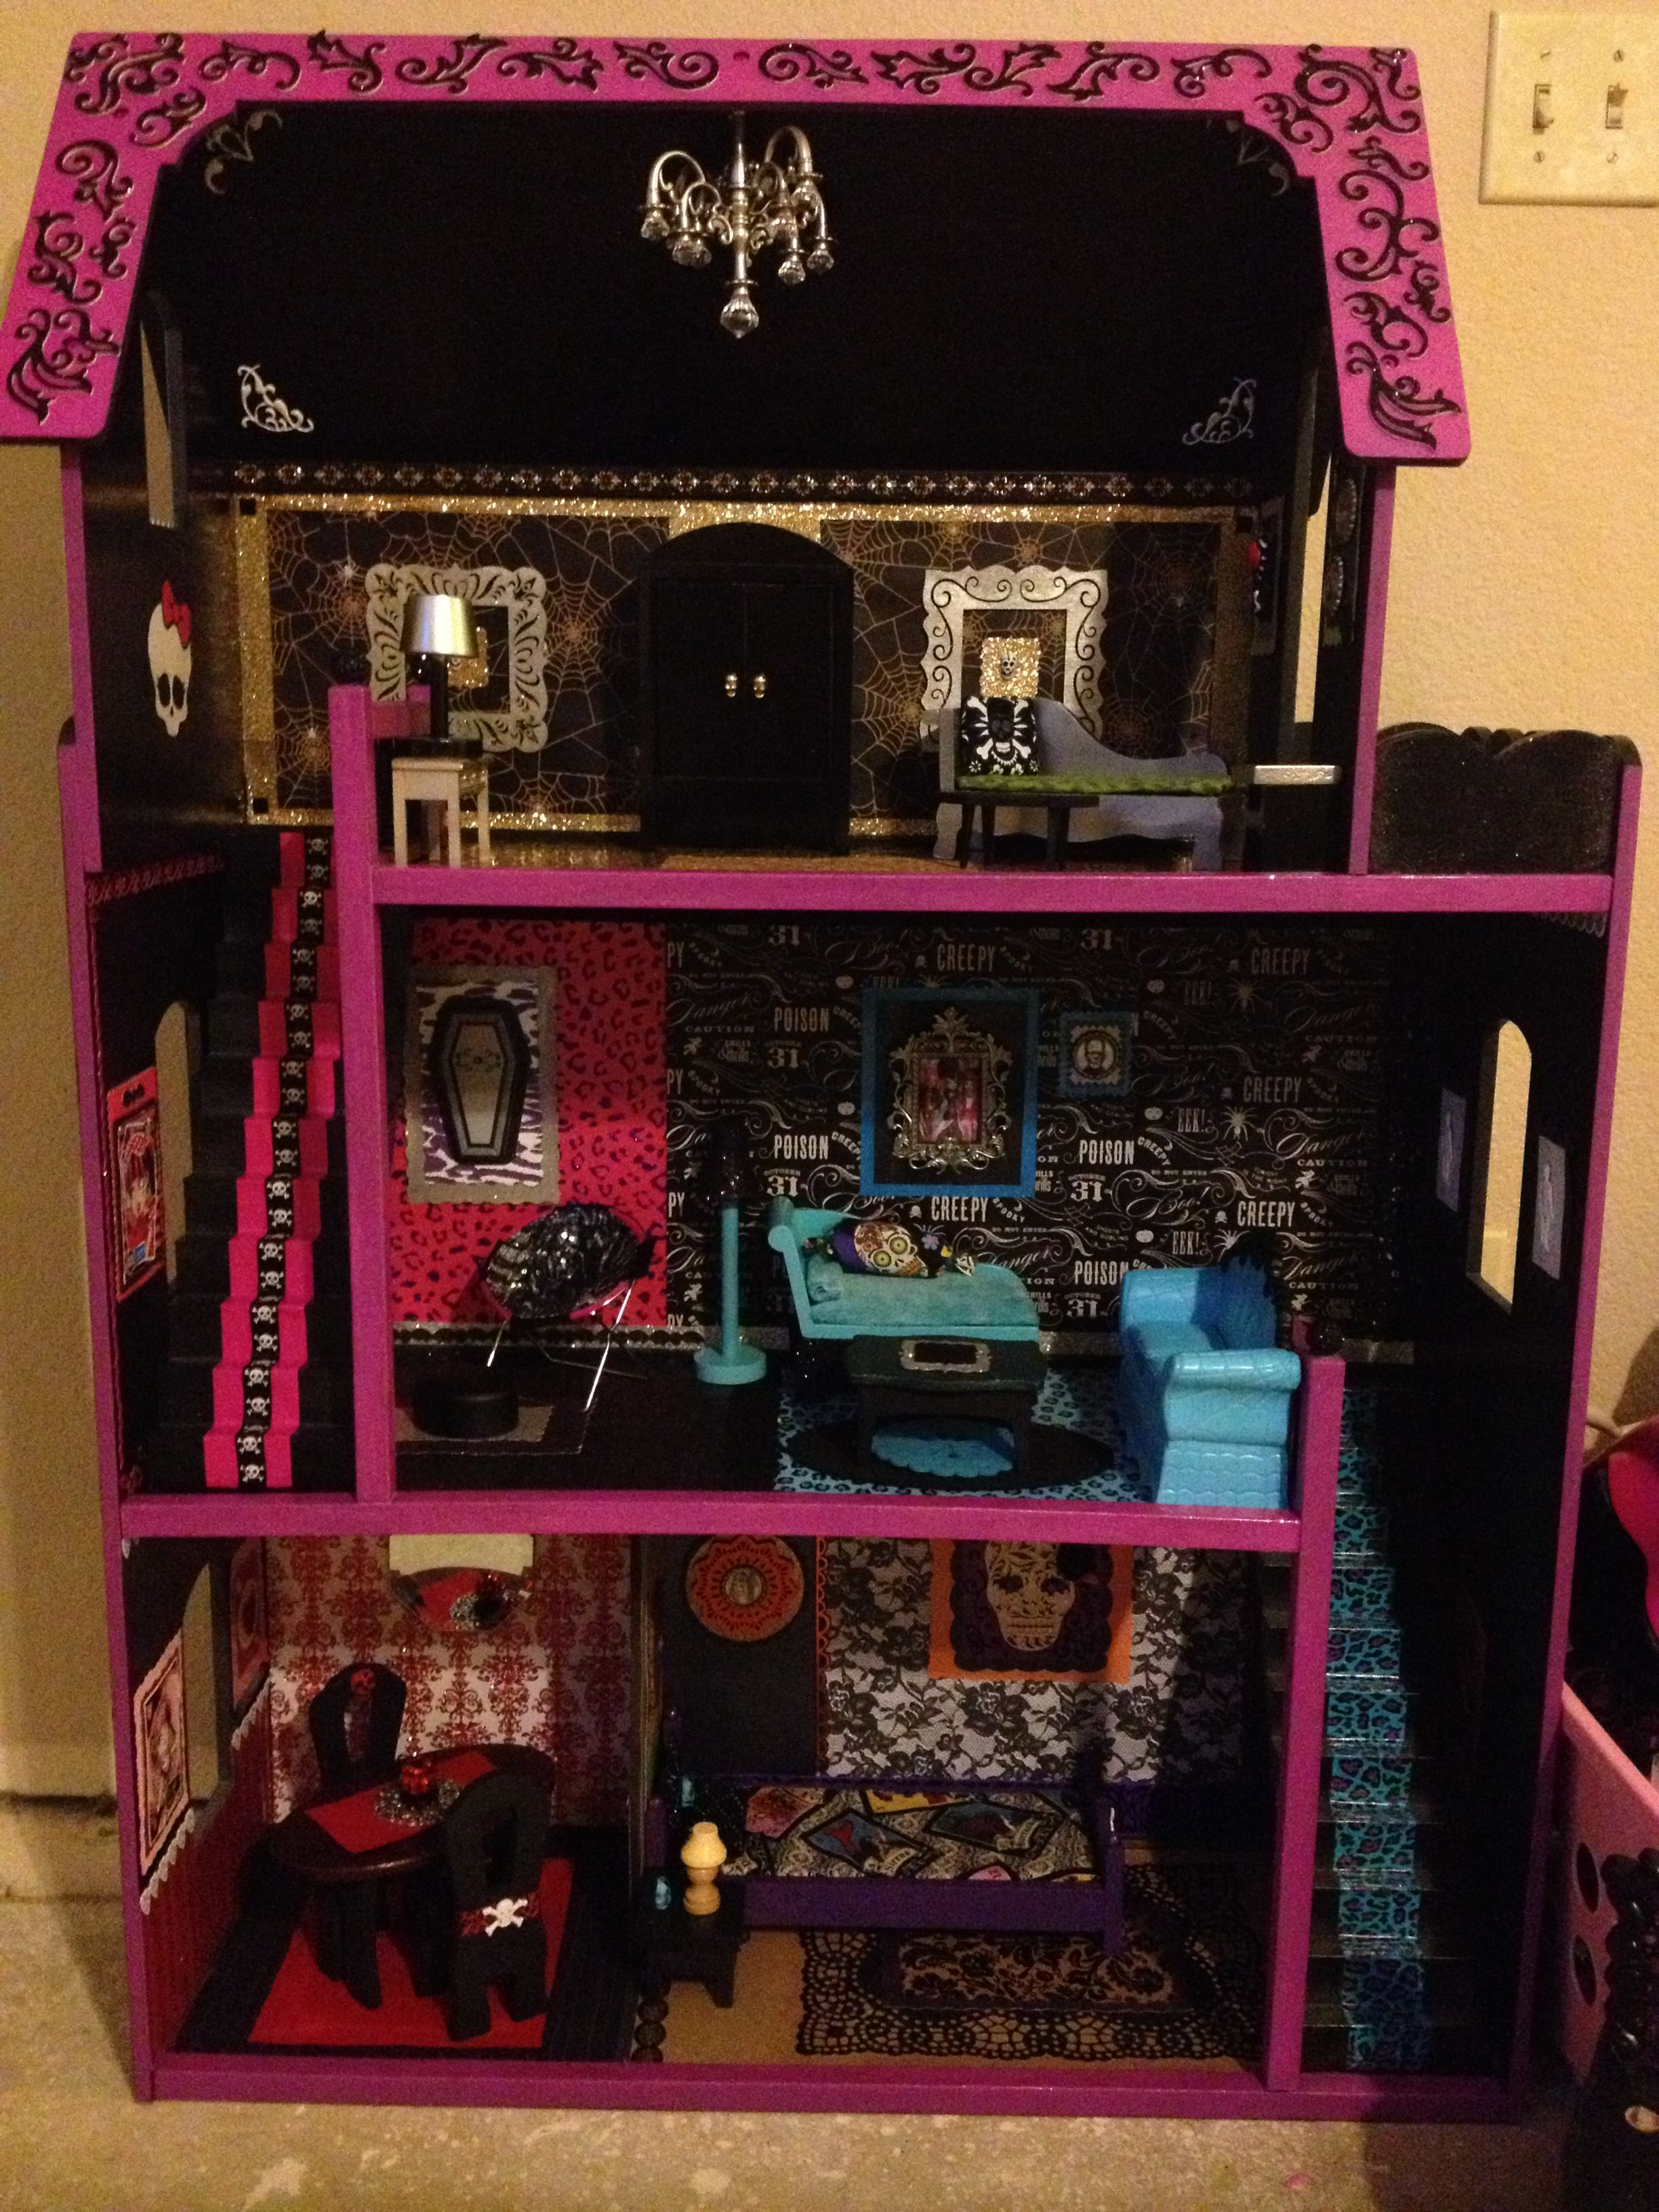 Image : 69 Monster High Clawdeen Wolf Doll Bed Big W Monster High Clawdeen Wolf Doll Bed - Monster High Bedroom